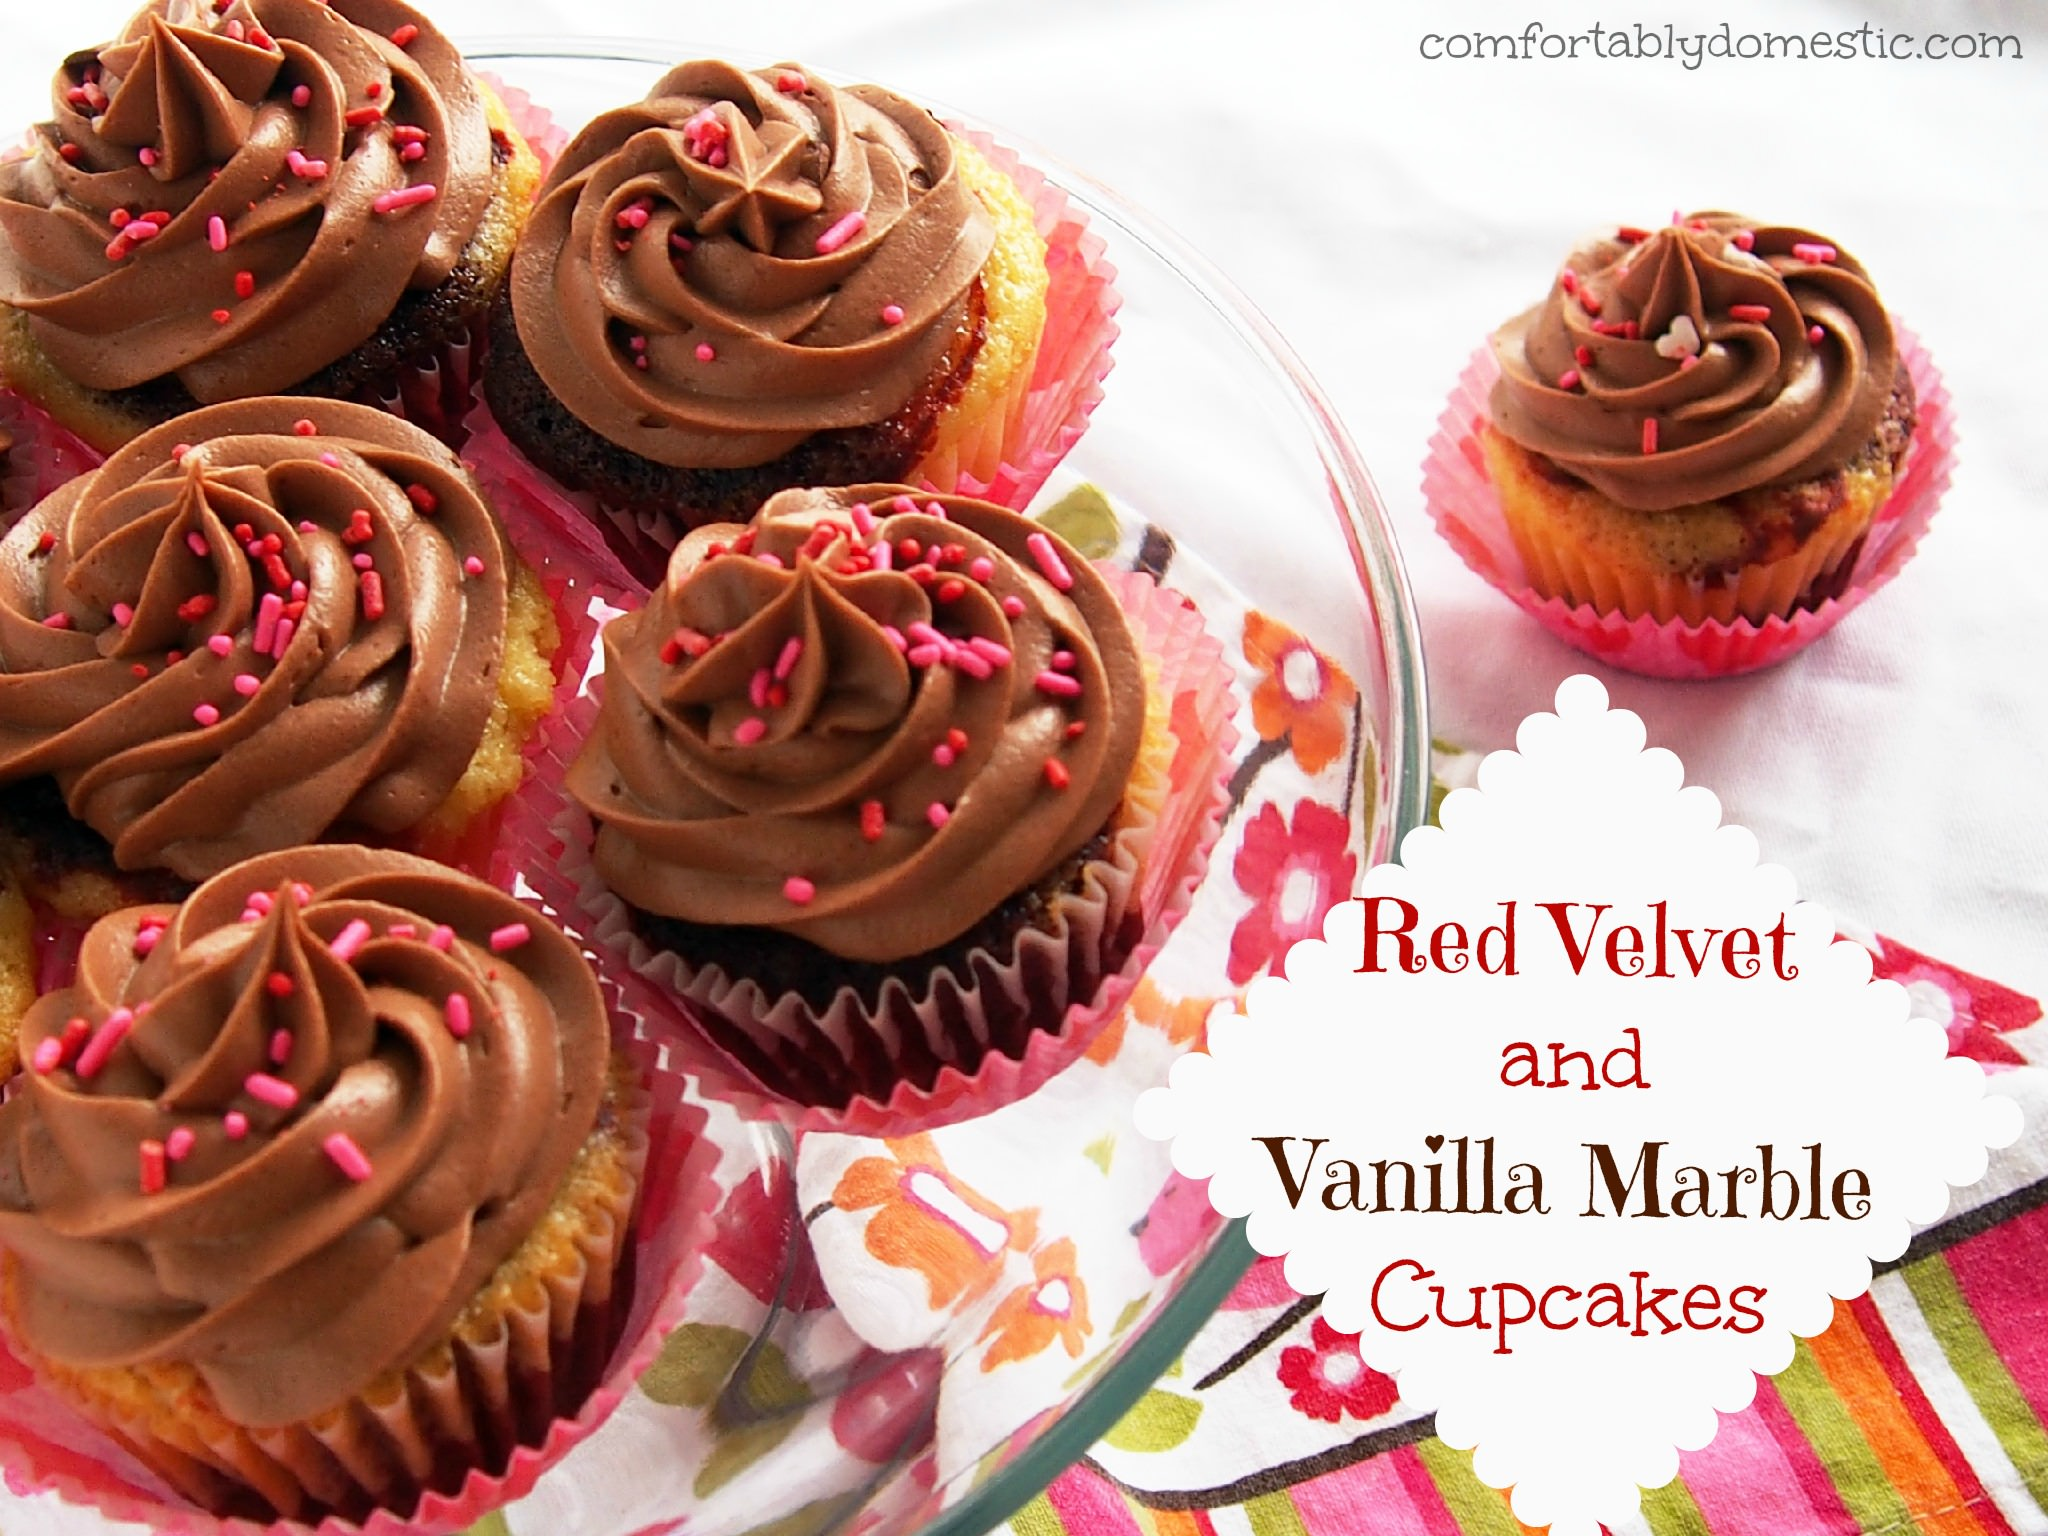 Red Velvet Vanilla Marble Cupcakes are a delicious combination of red velvet cake, marbled with moist vanilla cake. Topped with creamy, rich milk chocolate buttercream frosting. | ComfortablyDomestic.com